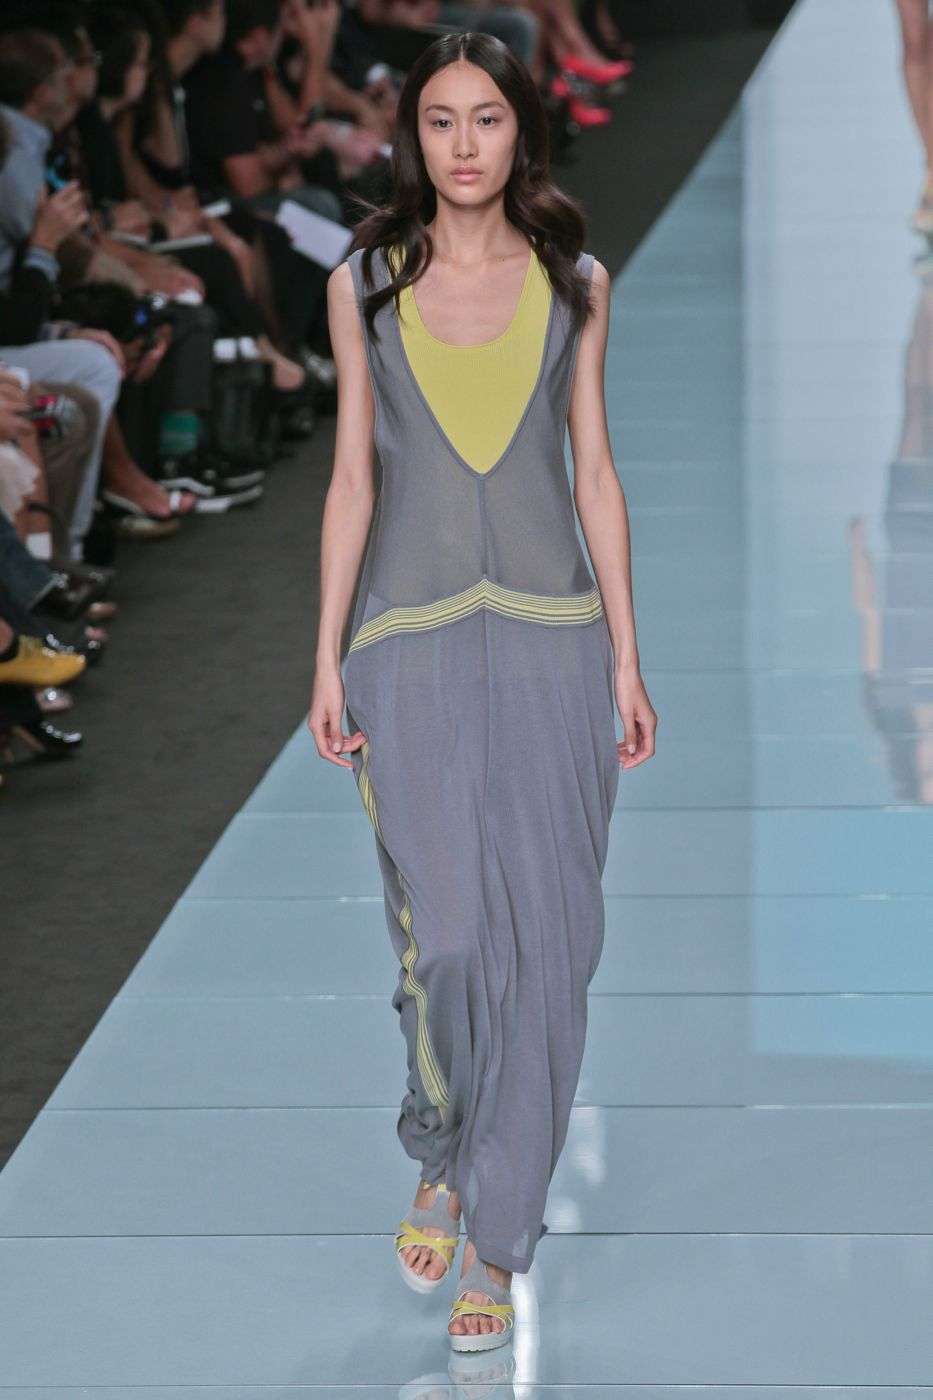 Anteprima - Spring Summer 2012 Women - Milano Fashion Week